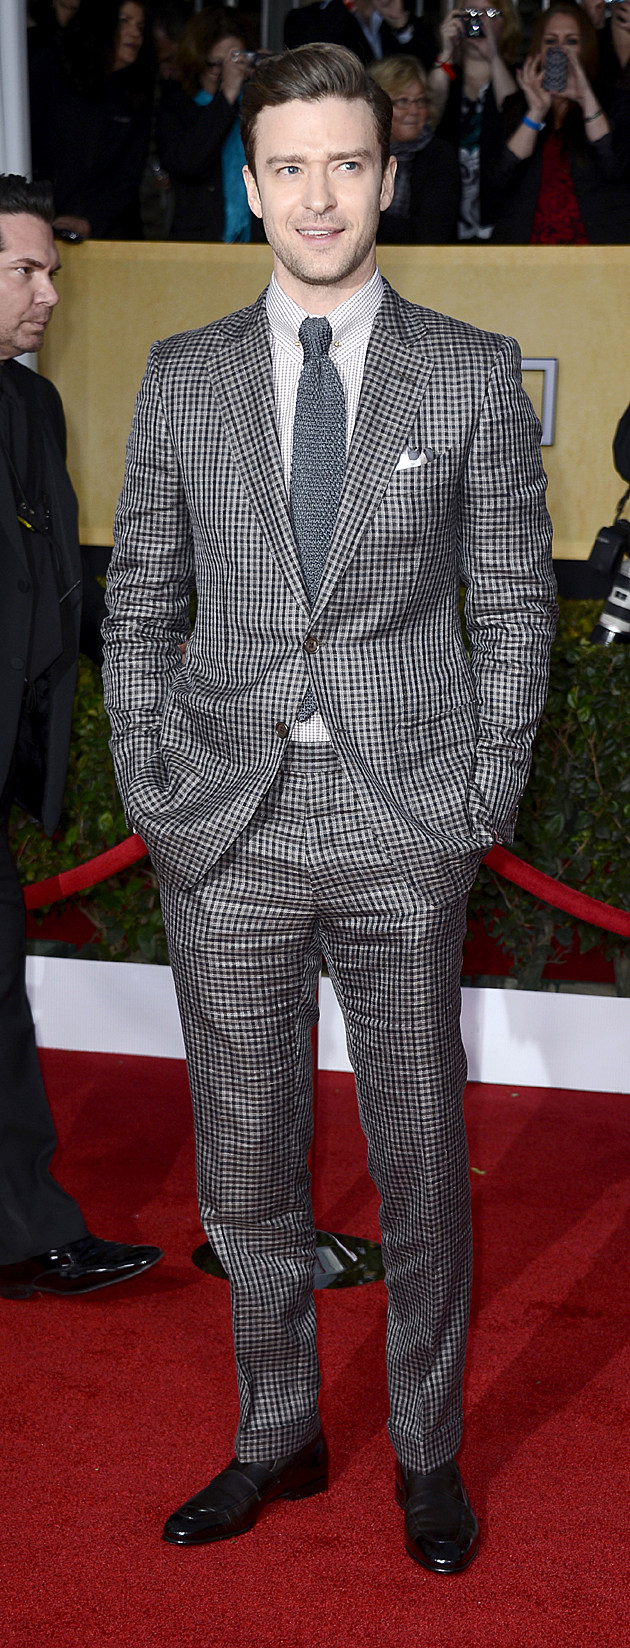 Justin Timberlake at the 19th Annual Screen Actors Guild Awards